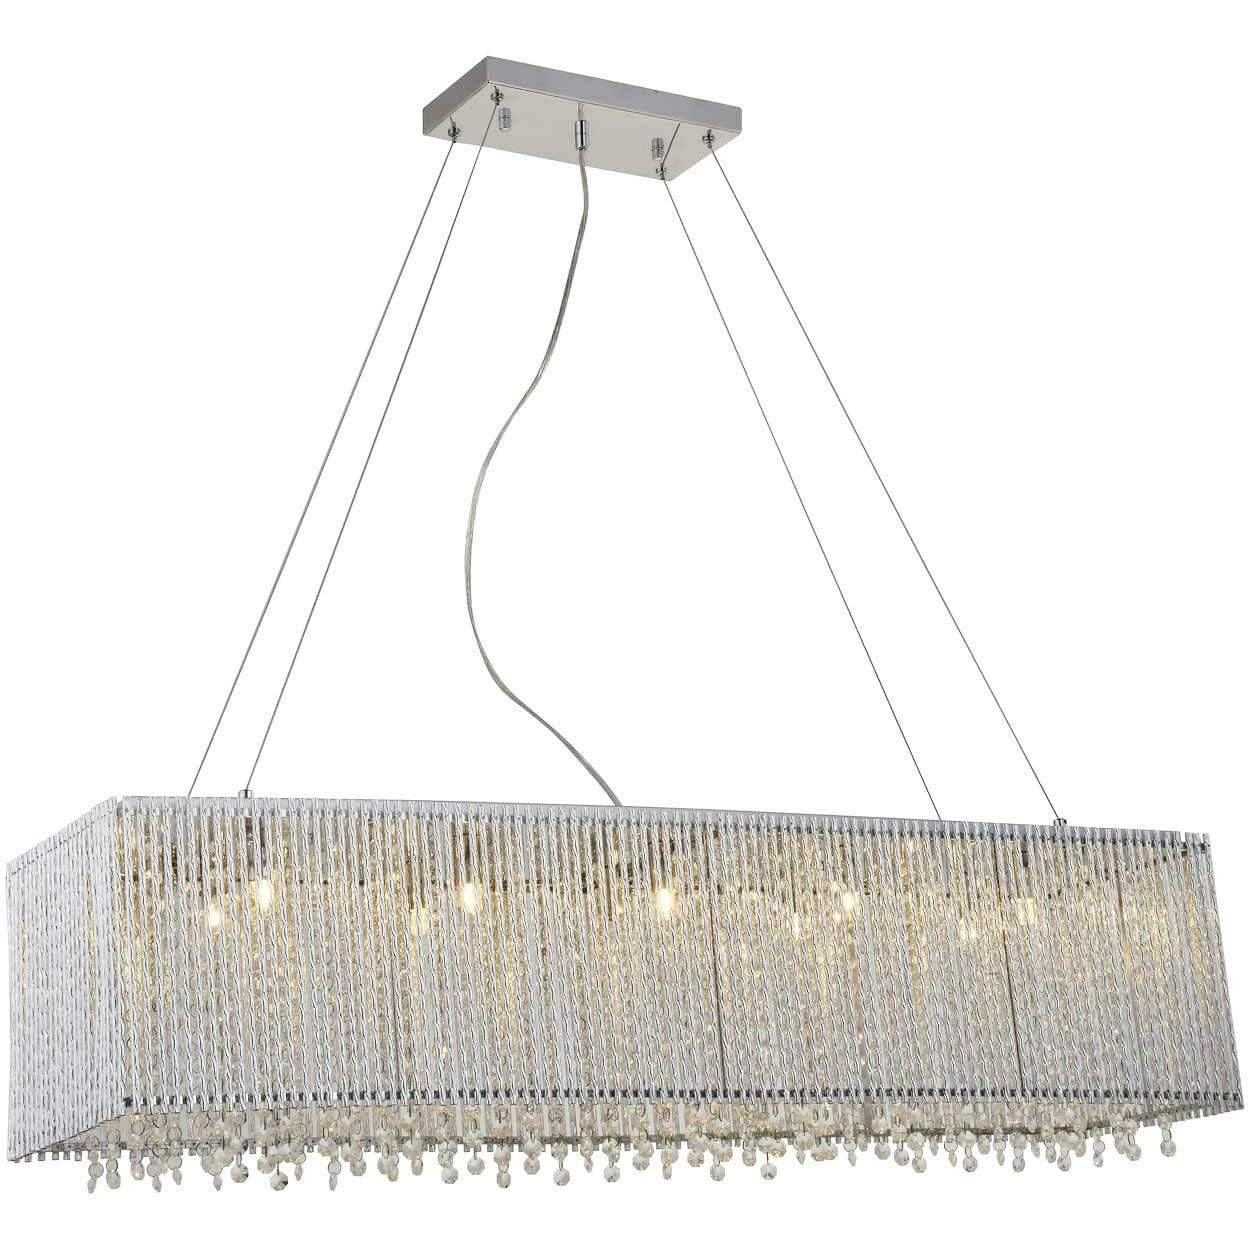 Bromi Design Chandeliers Chrome / Metal, Crystals Crystalline Modern 10 Lights Crystals Chandelier By Bromi Design BCP1113-10B